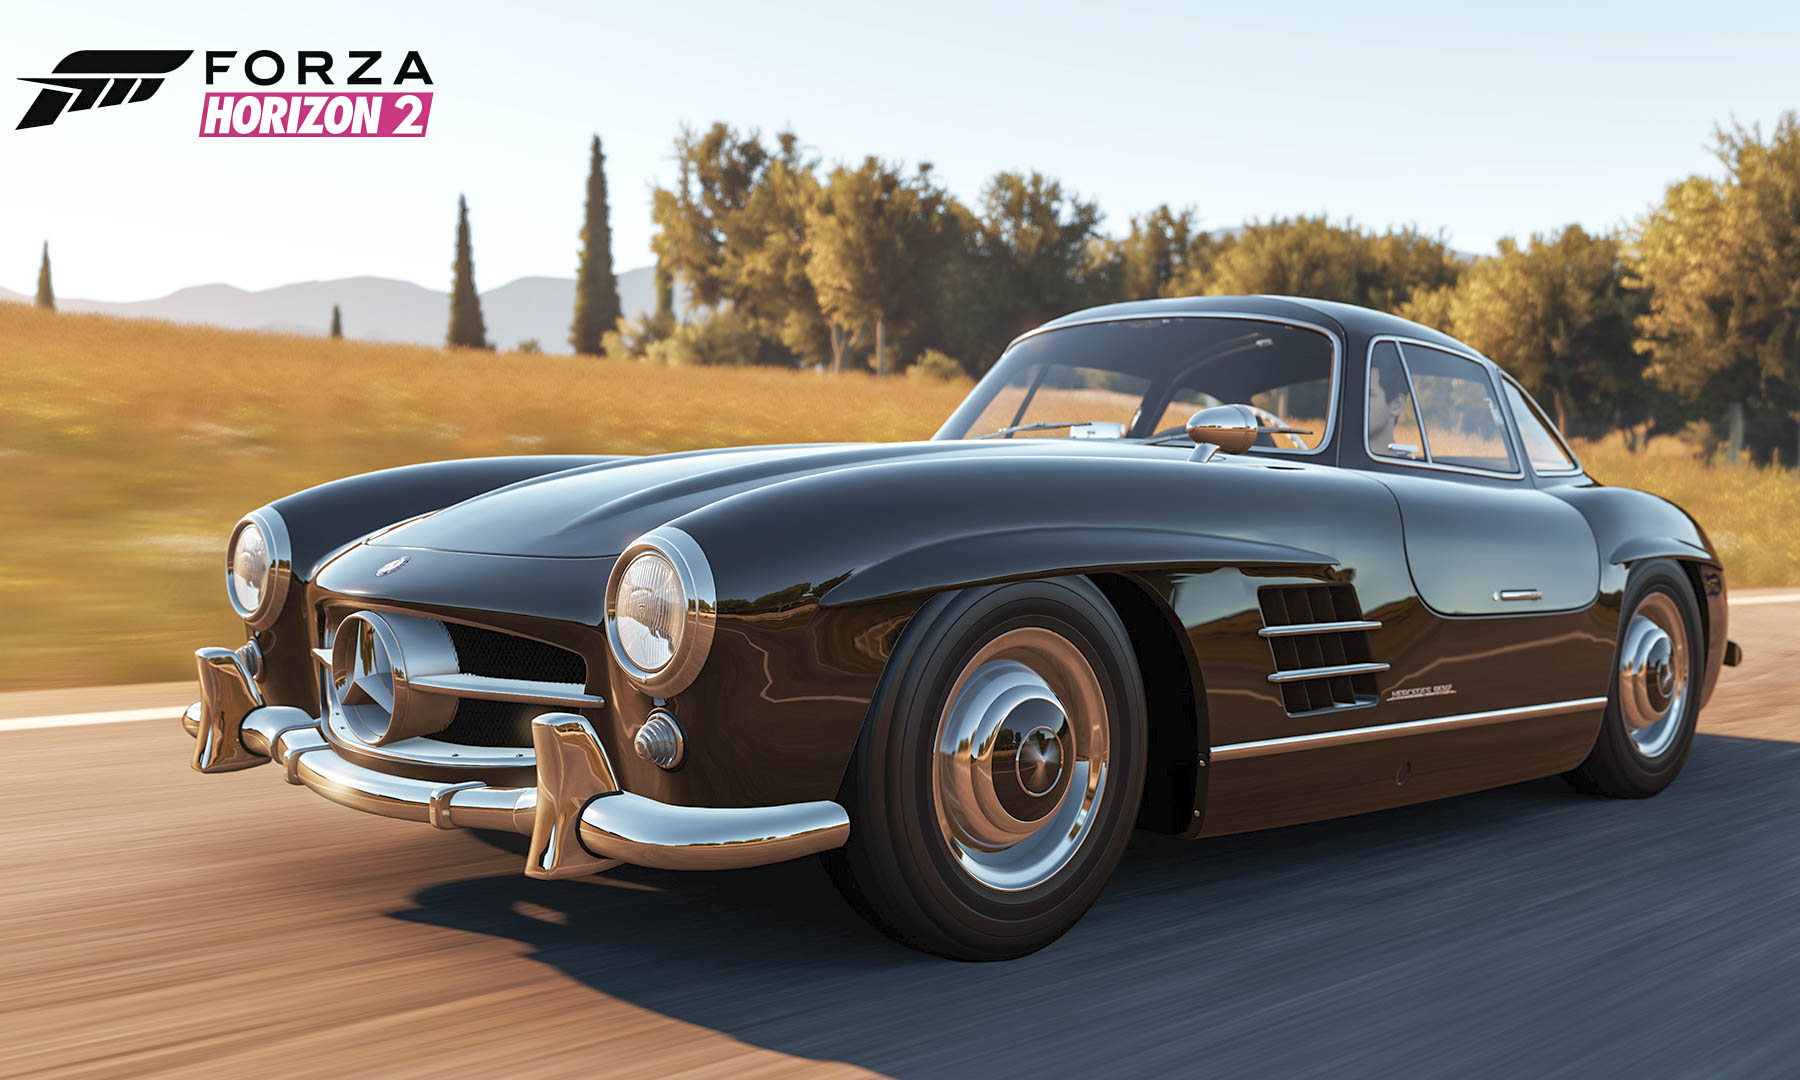 Buy forza horizon 2 for xbox 360 scan card gift and download for Mercedes benz loyalty discount